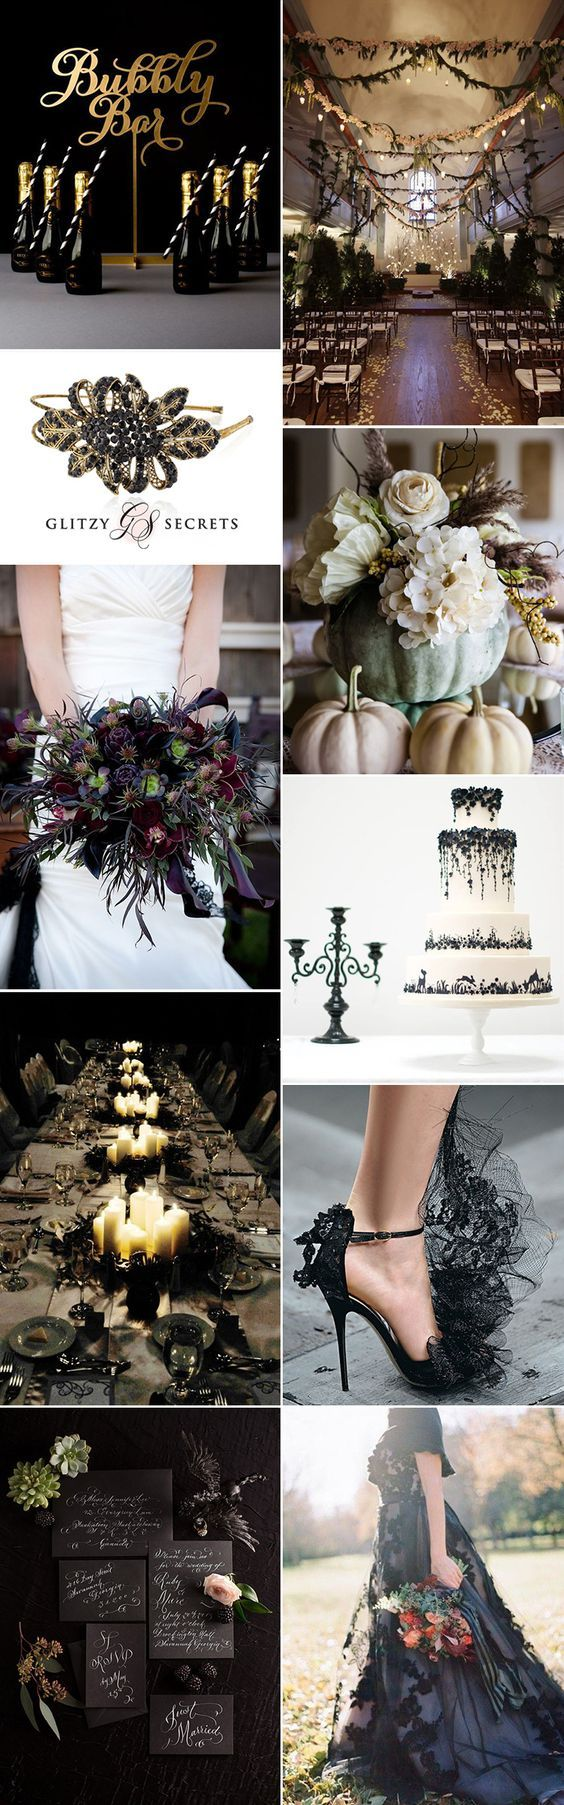 Pin By Bernice On Collages Pinterest Halloween Weddings